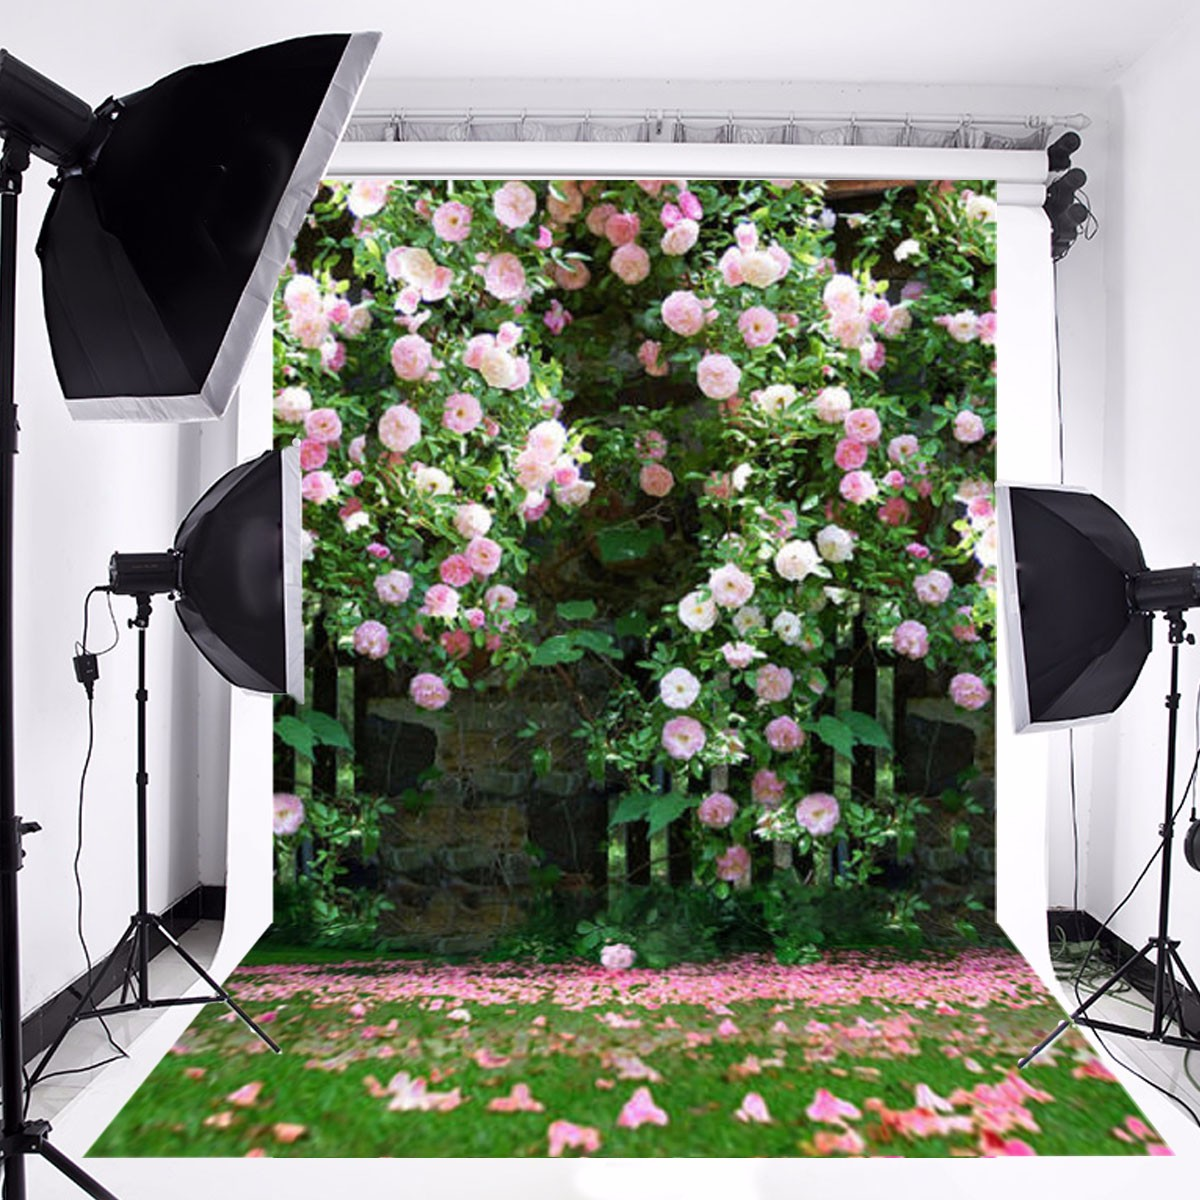 Freya Vinyl Romantic Photography Wall Studio Photography Background Cloth Flowers Garden For Wedding Birthday Backdrop 5x7FT kate natural scenery photography backdrop autumn defoliation for outdoor wedding photography background camera fotografica